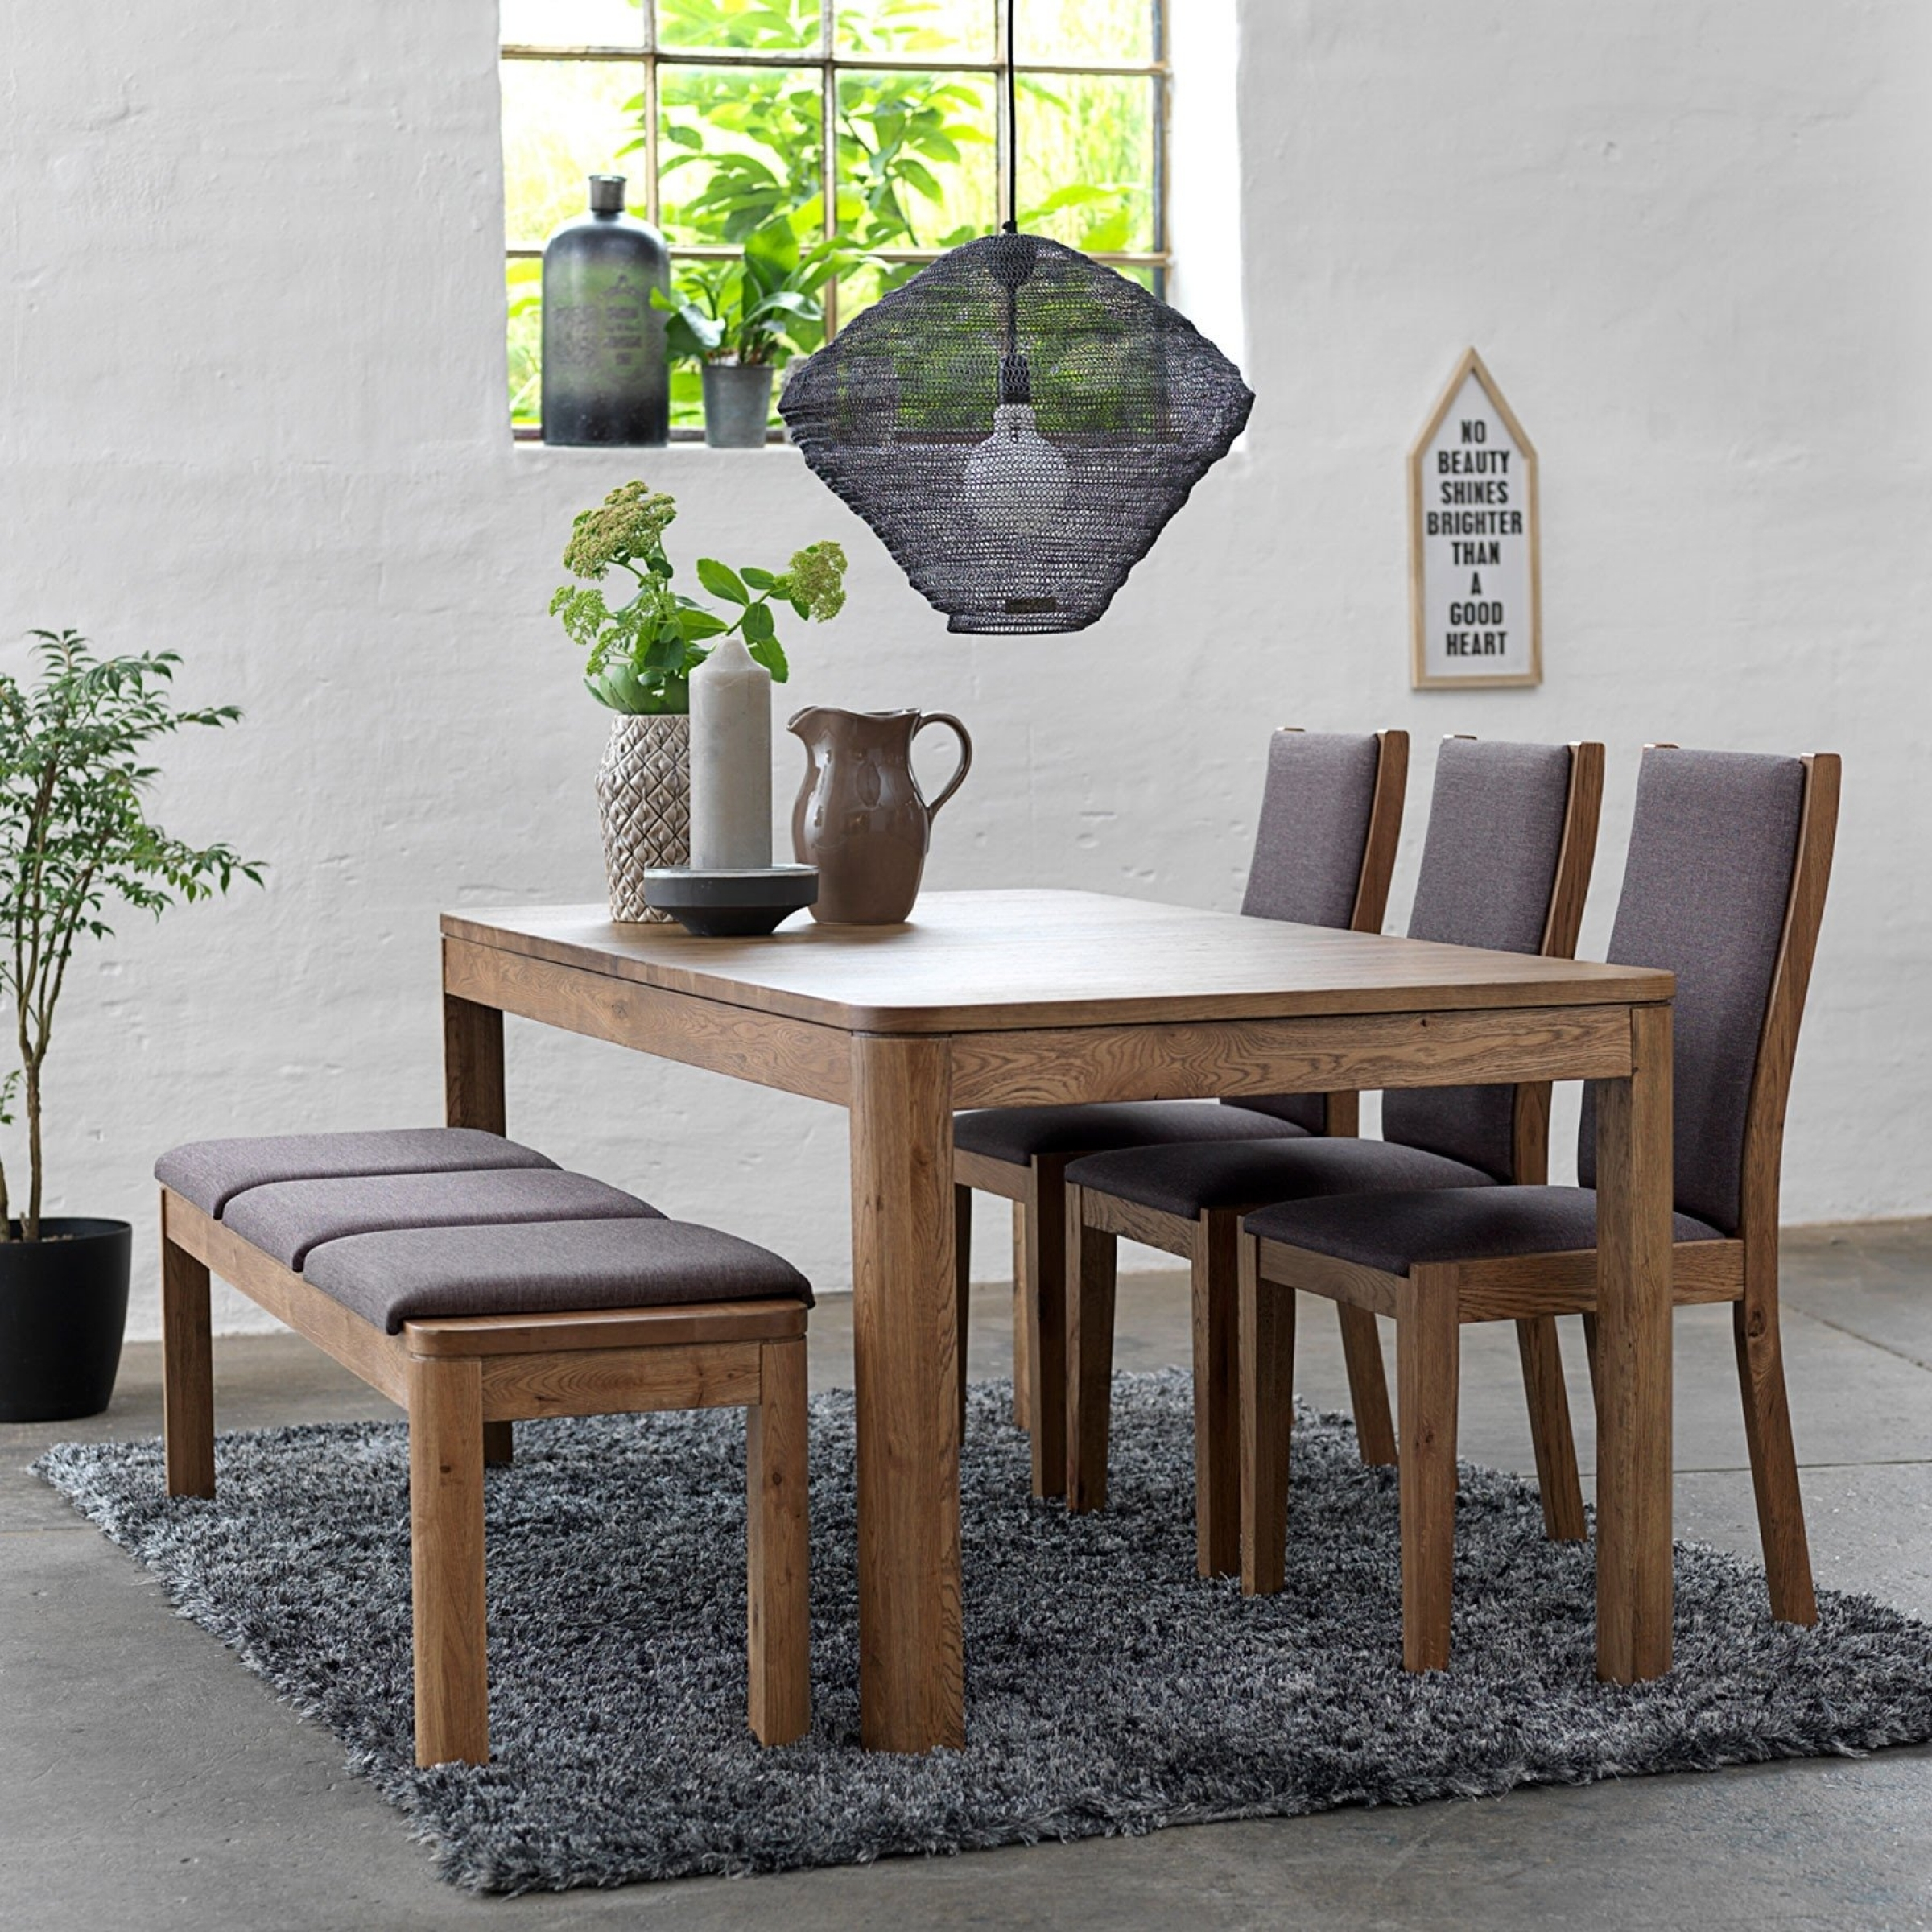 50+ Dining Table With Bench You'll Love In 2020